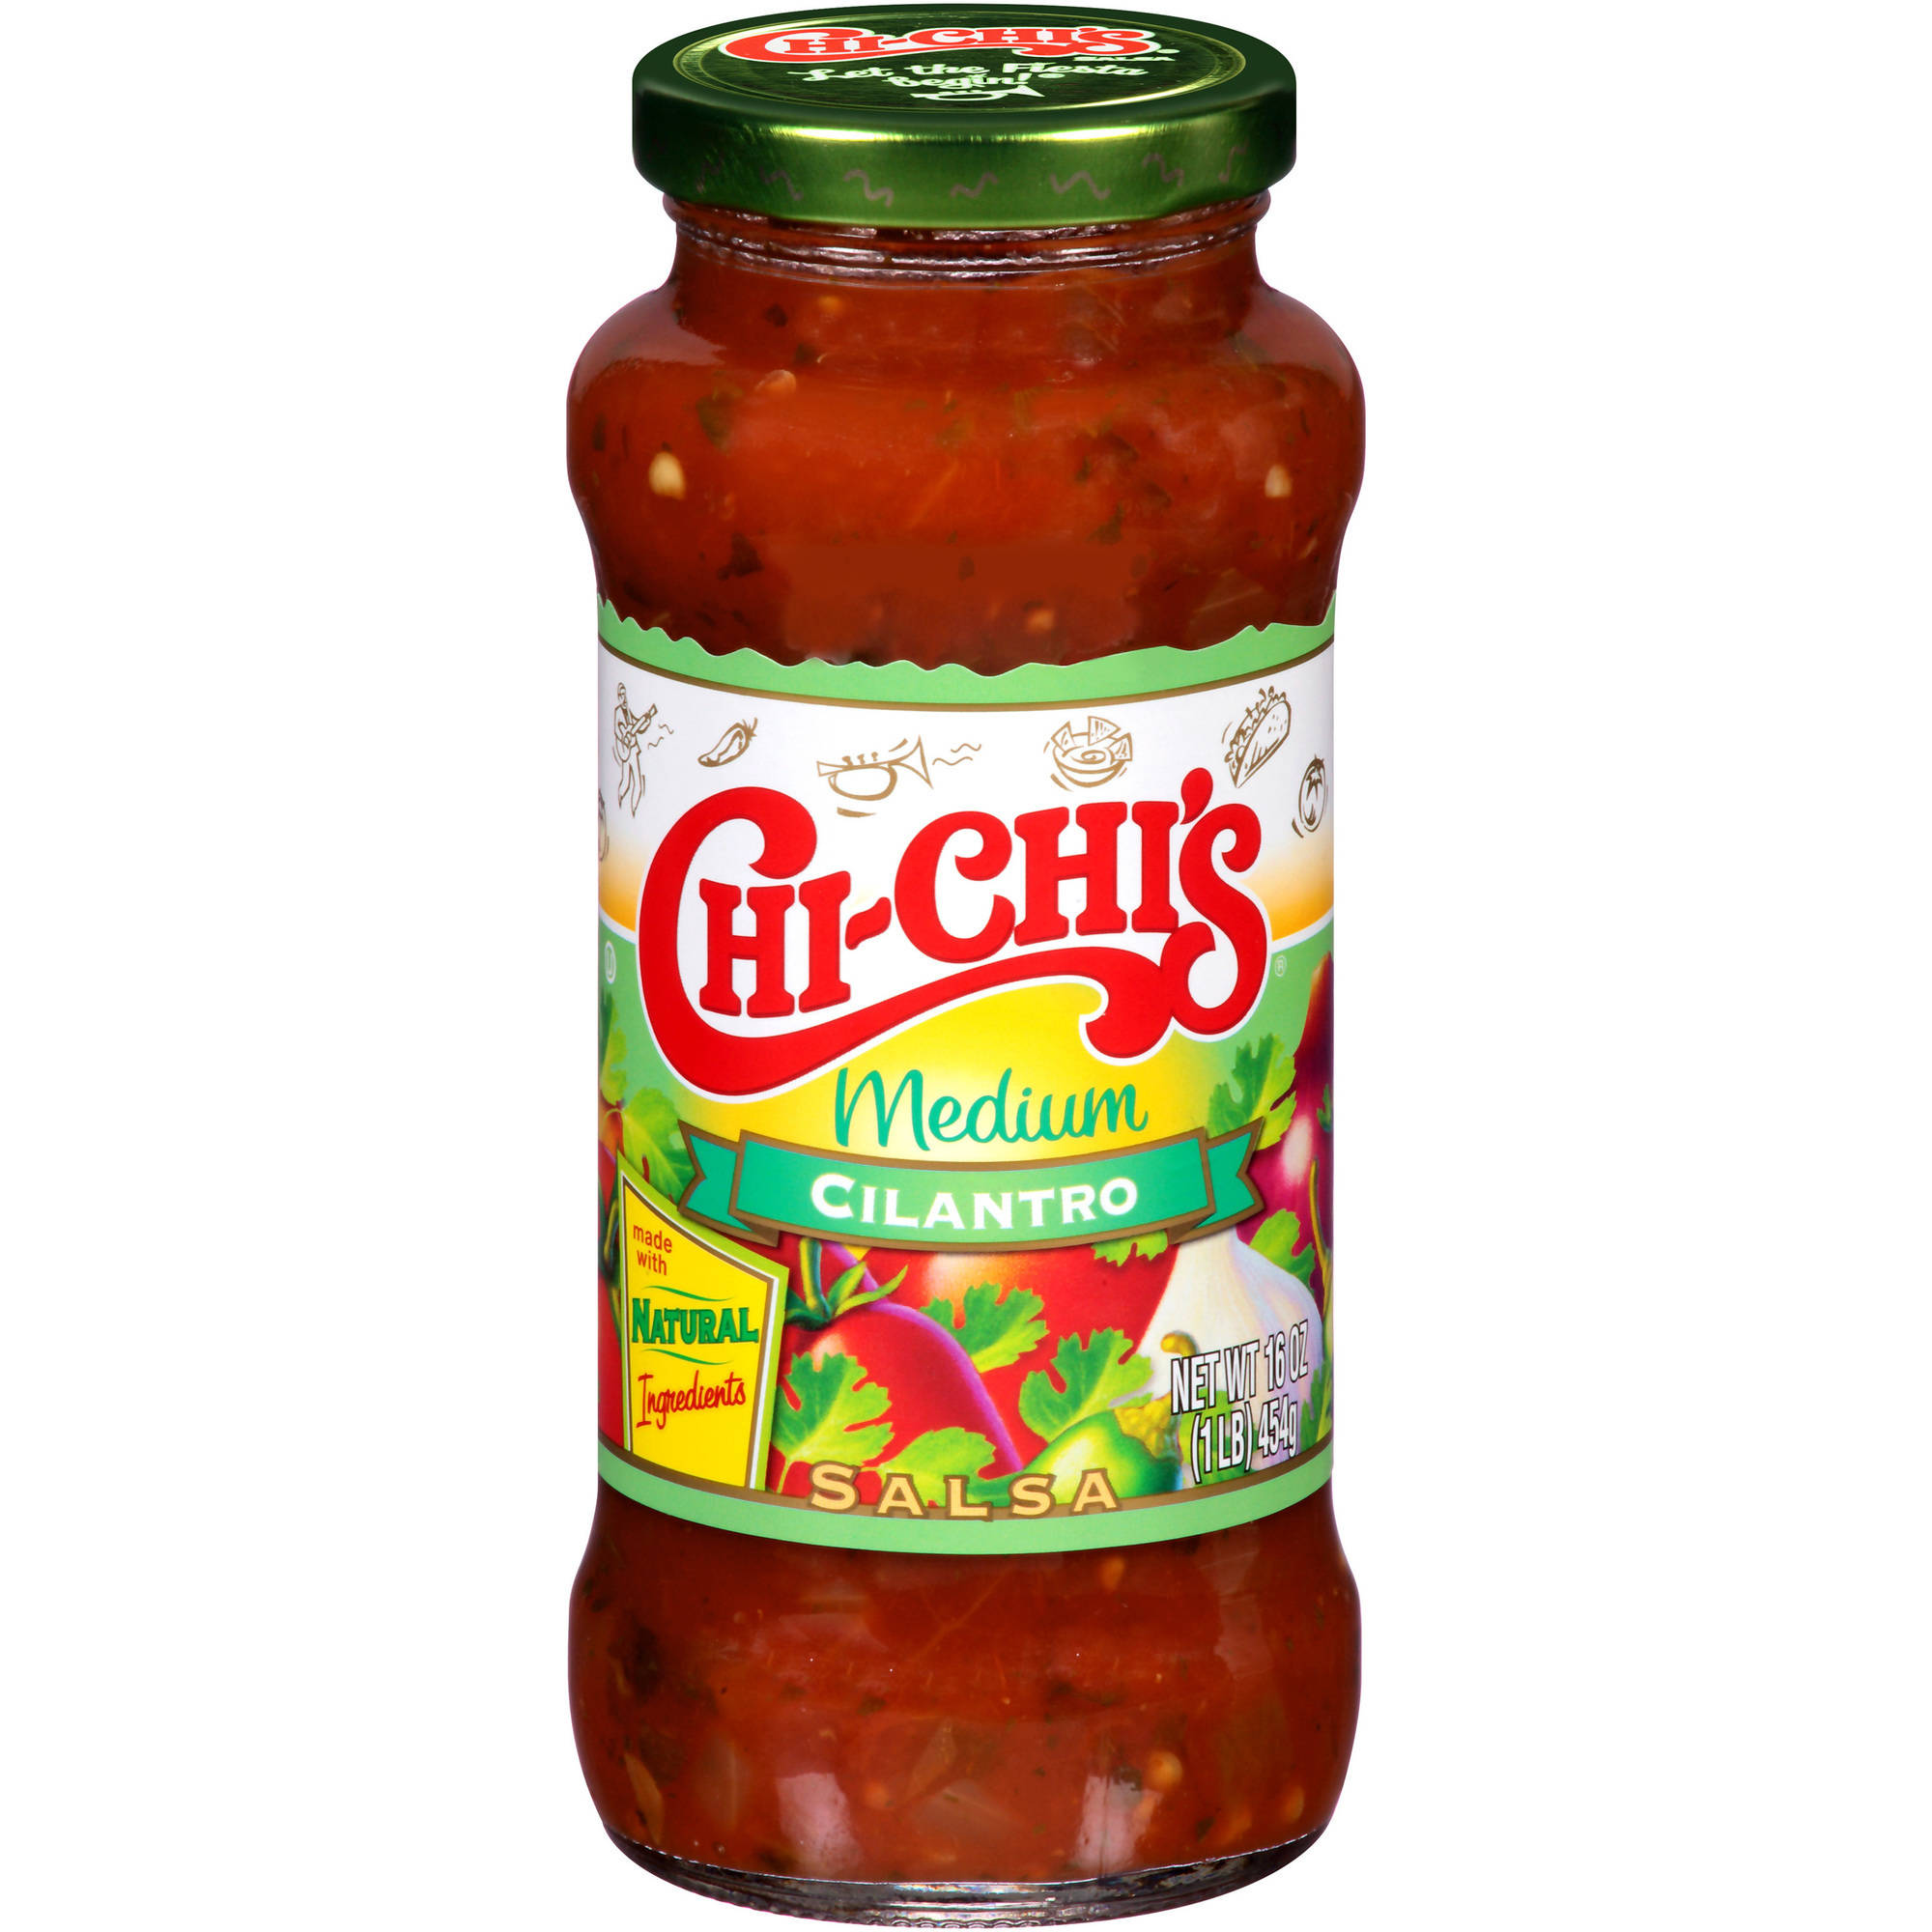 Chi-Chi's Medium Cilantro Salsa, 16 oz